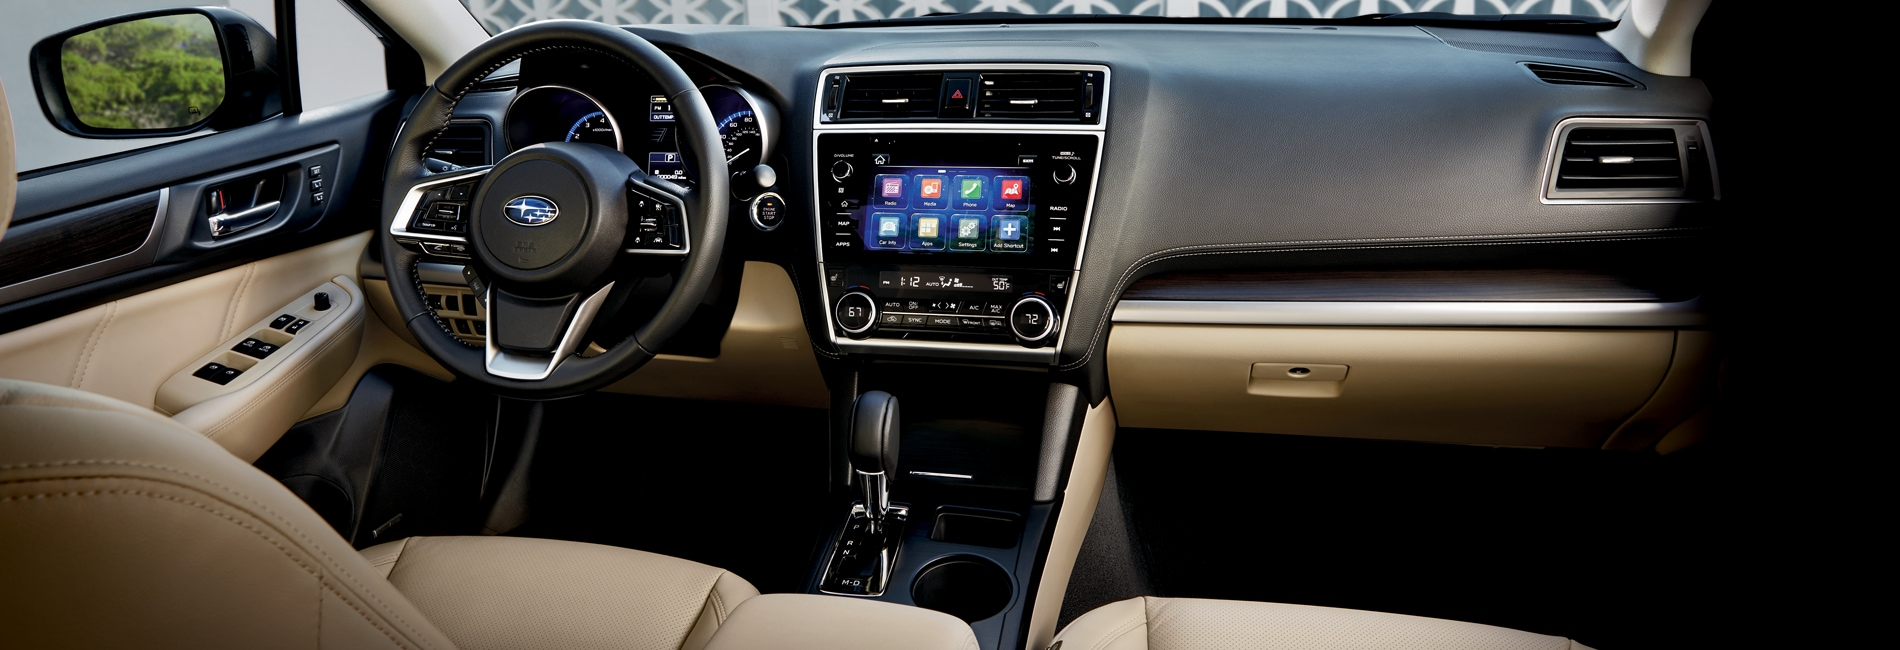 2019 Subaru Legacy Interior Features